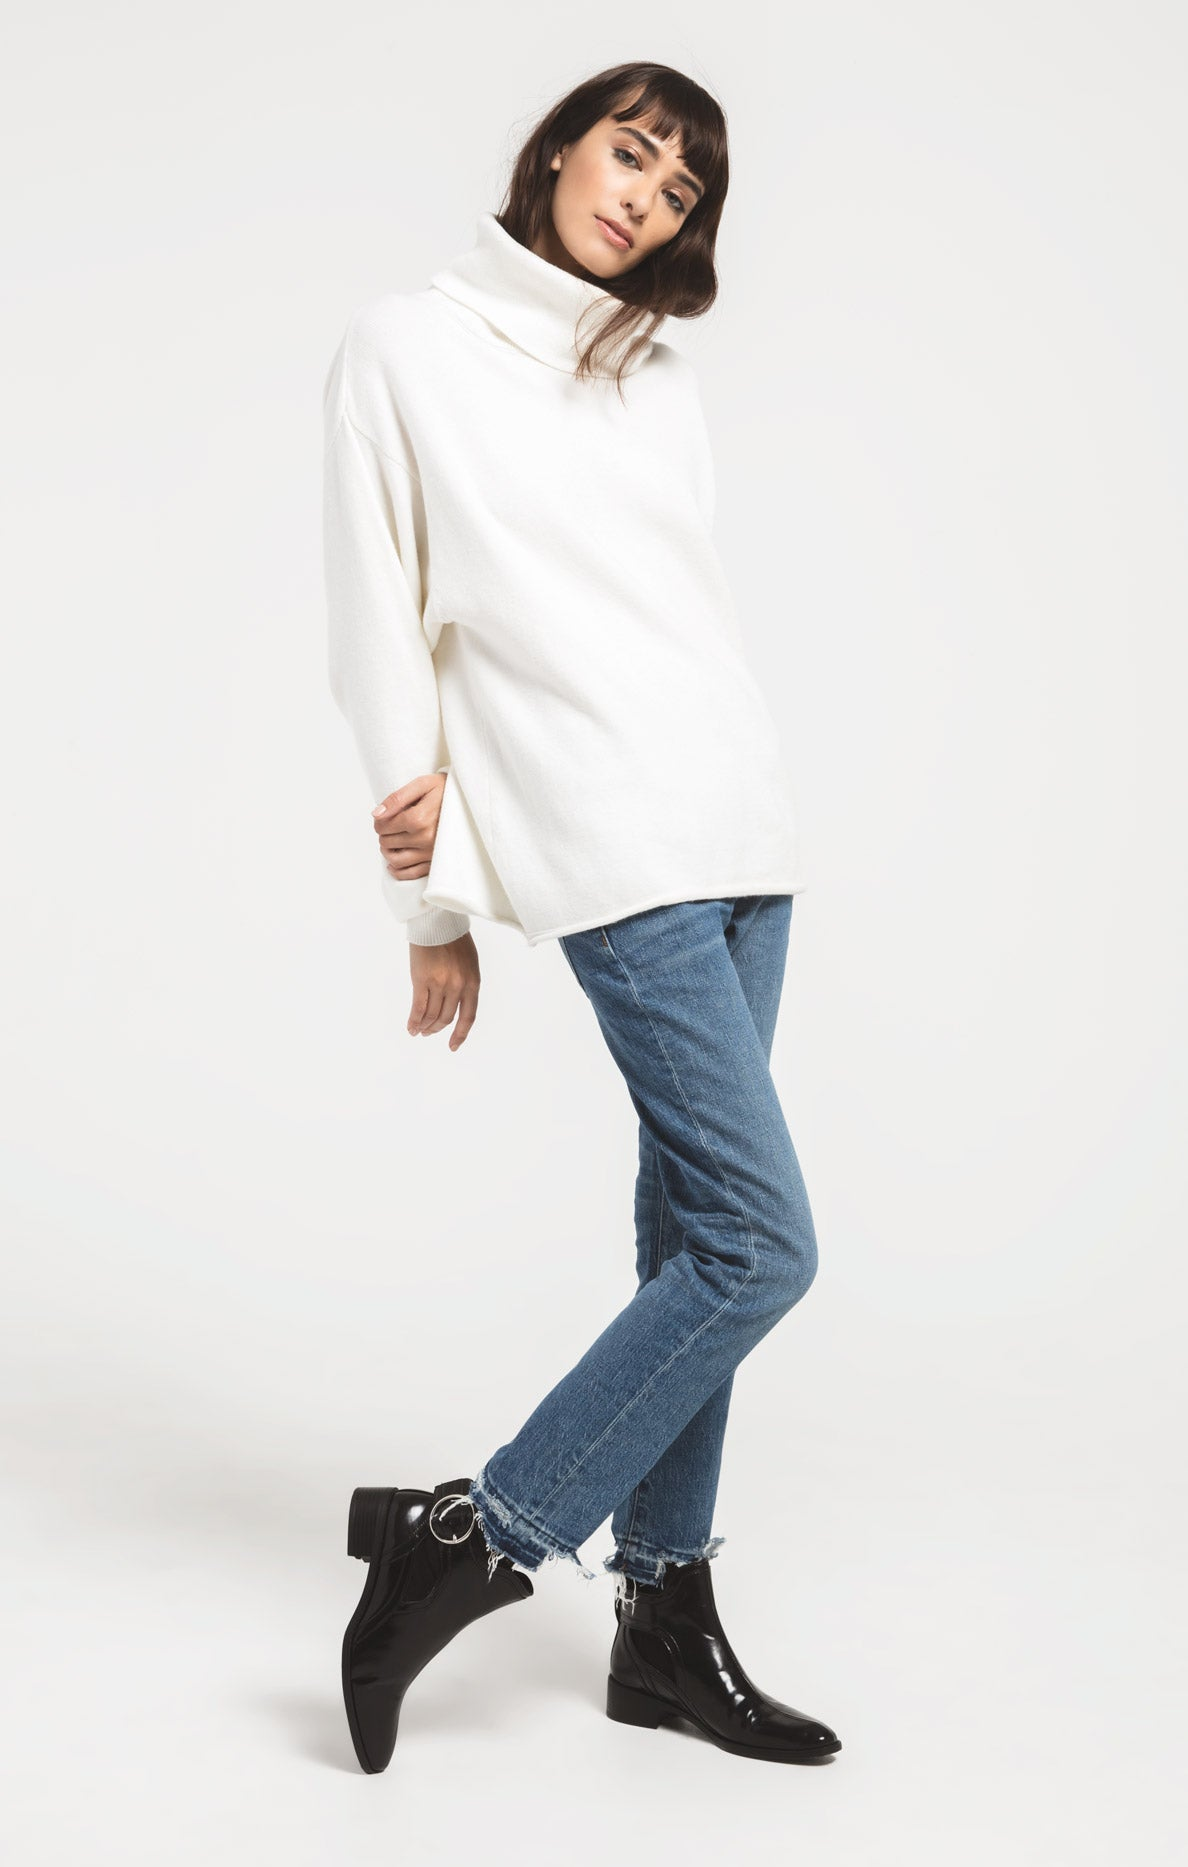 Sweaters Fort Greene Turtleneck Sweater By Rag Poets Winter White